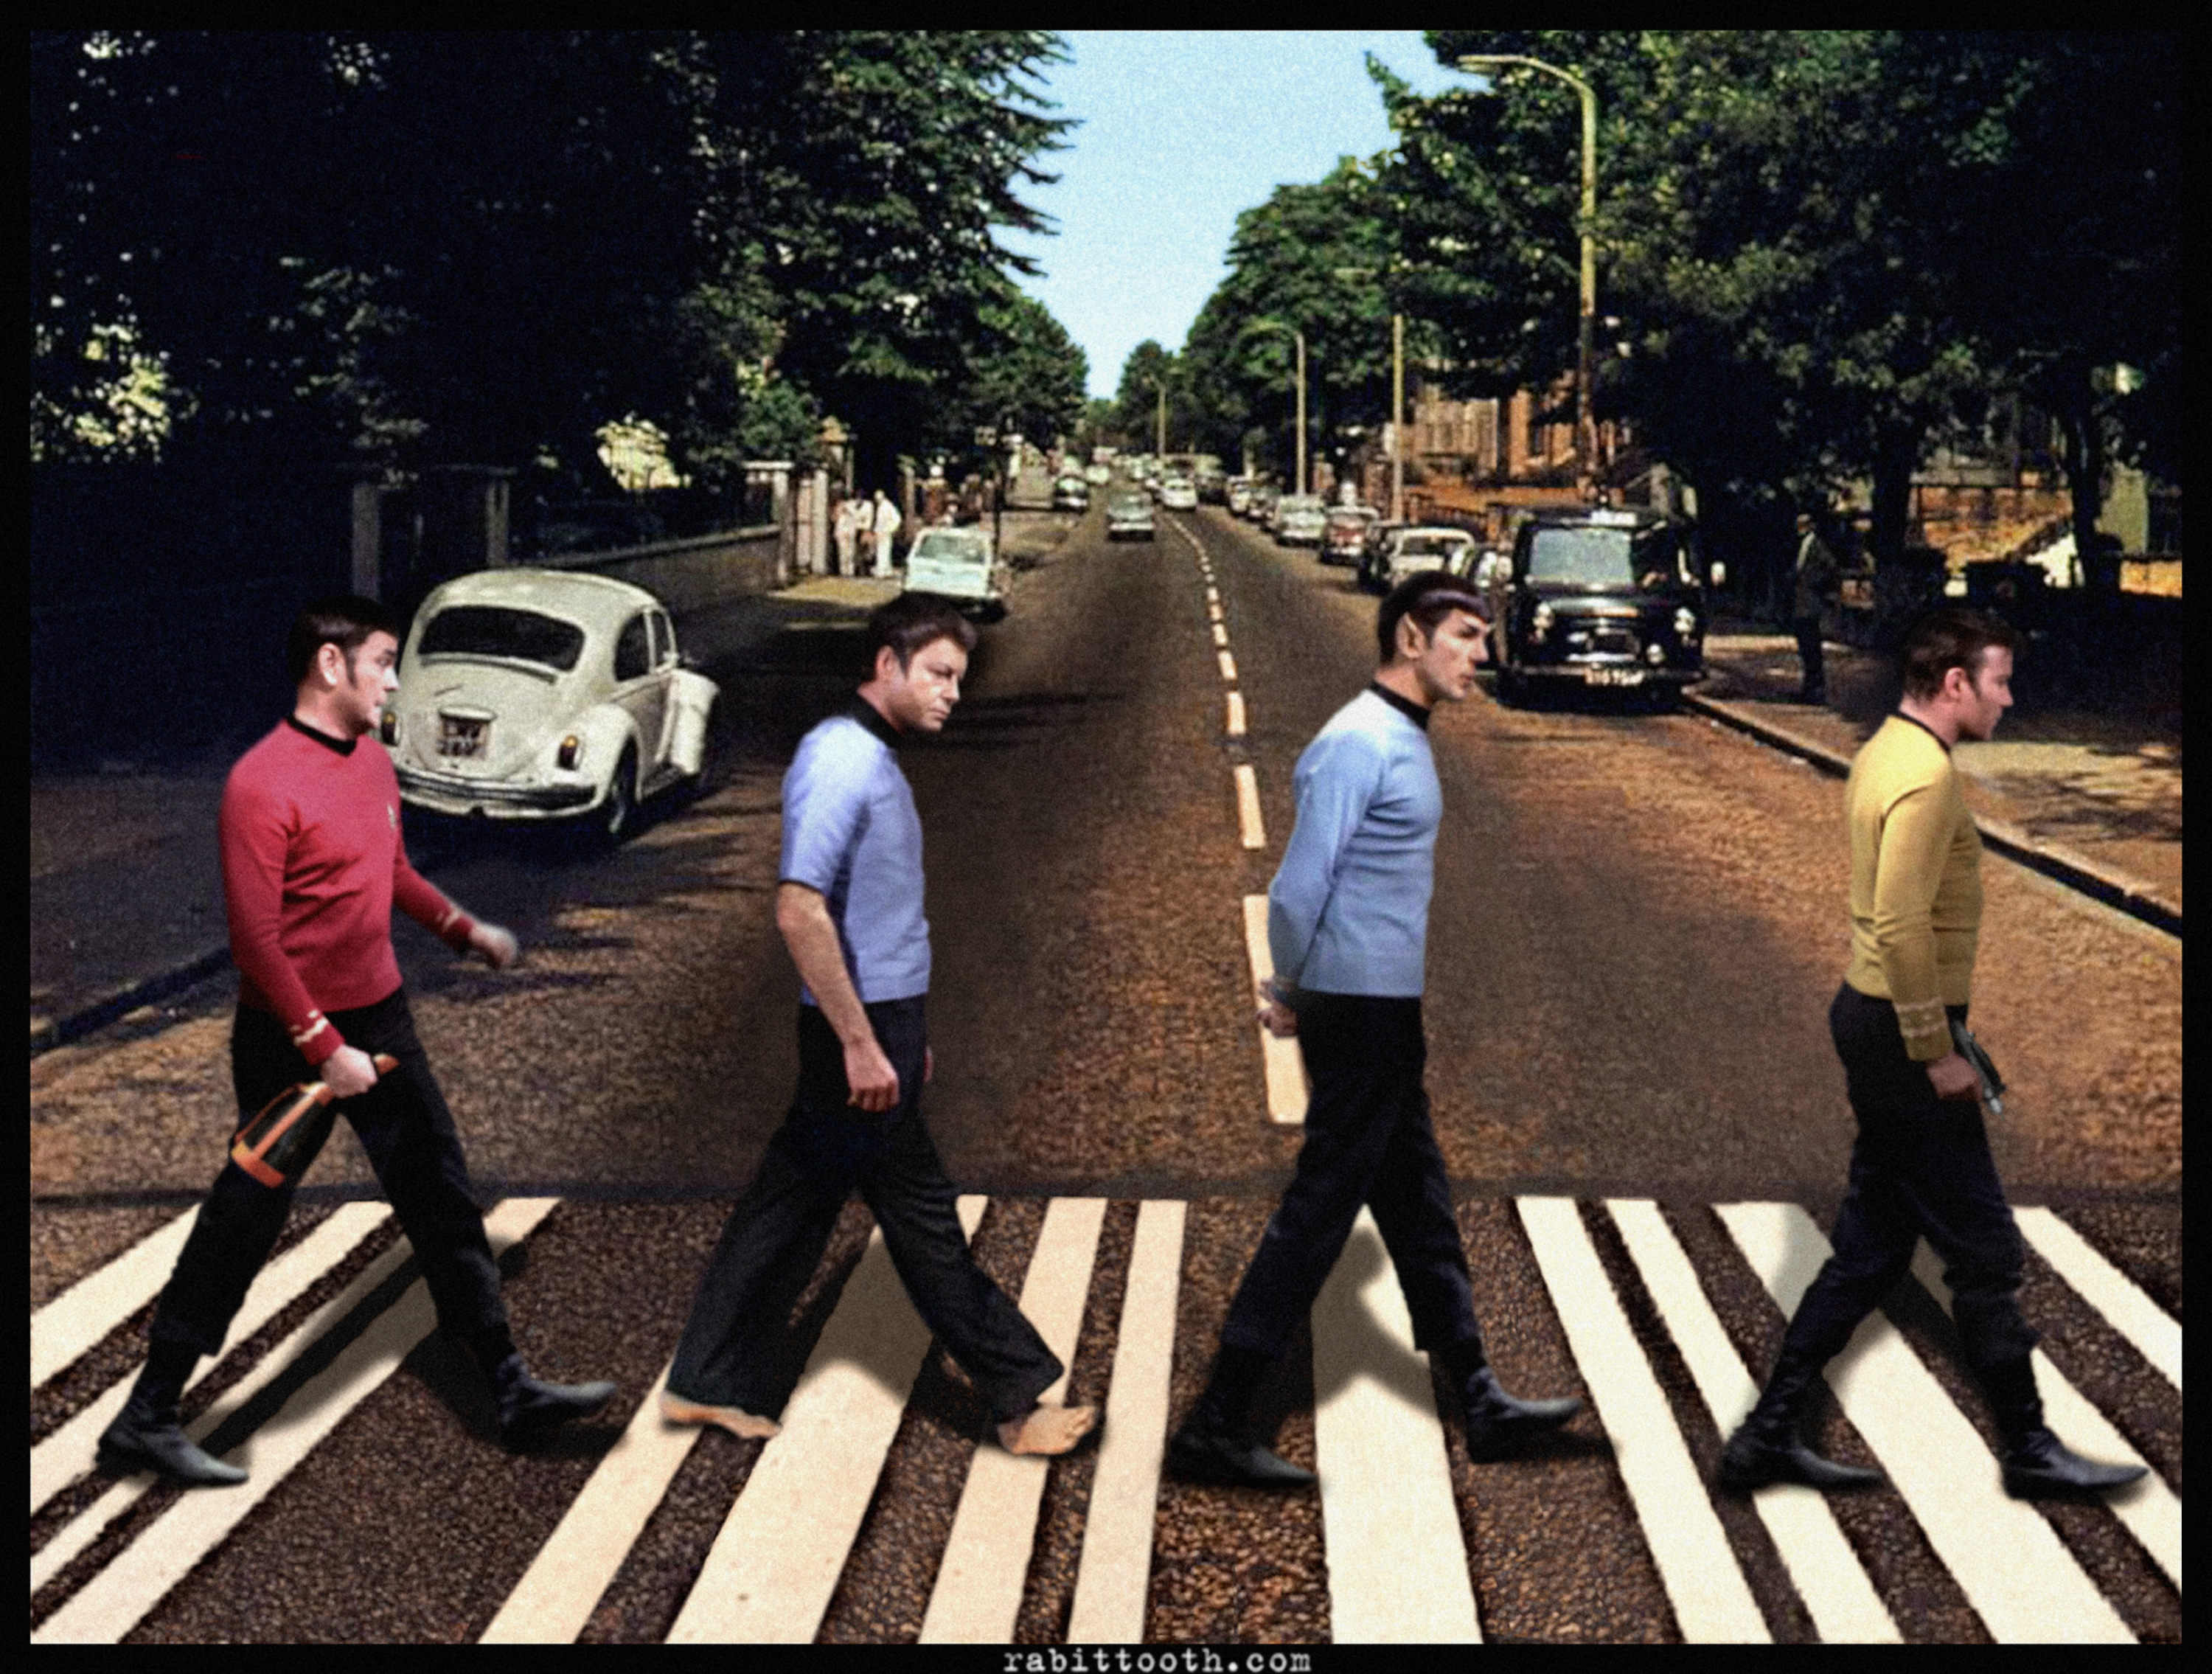 29052013: Abbey Road Star Trek